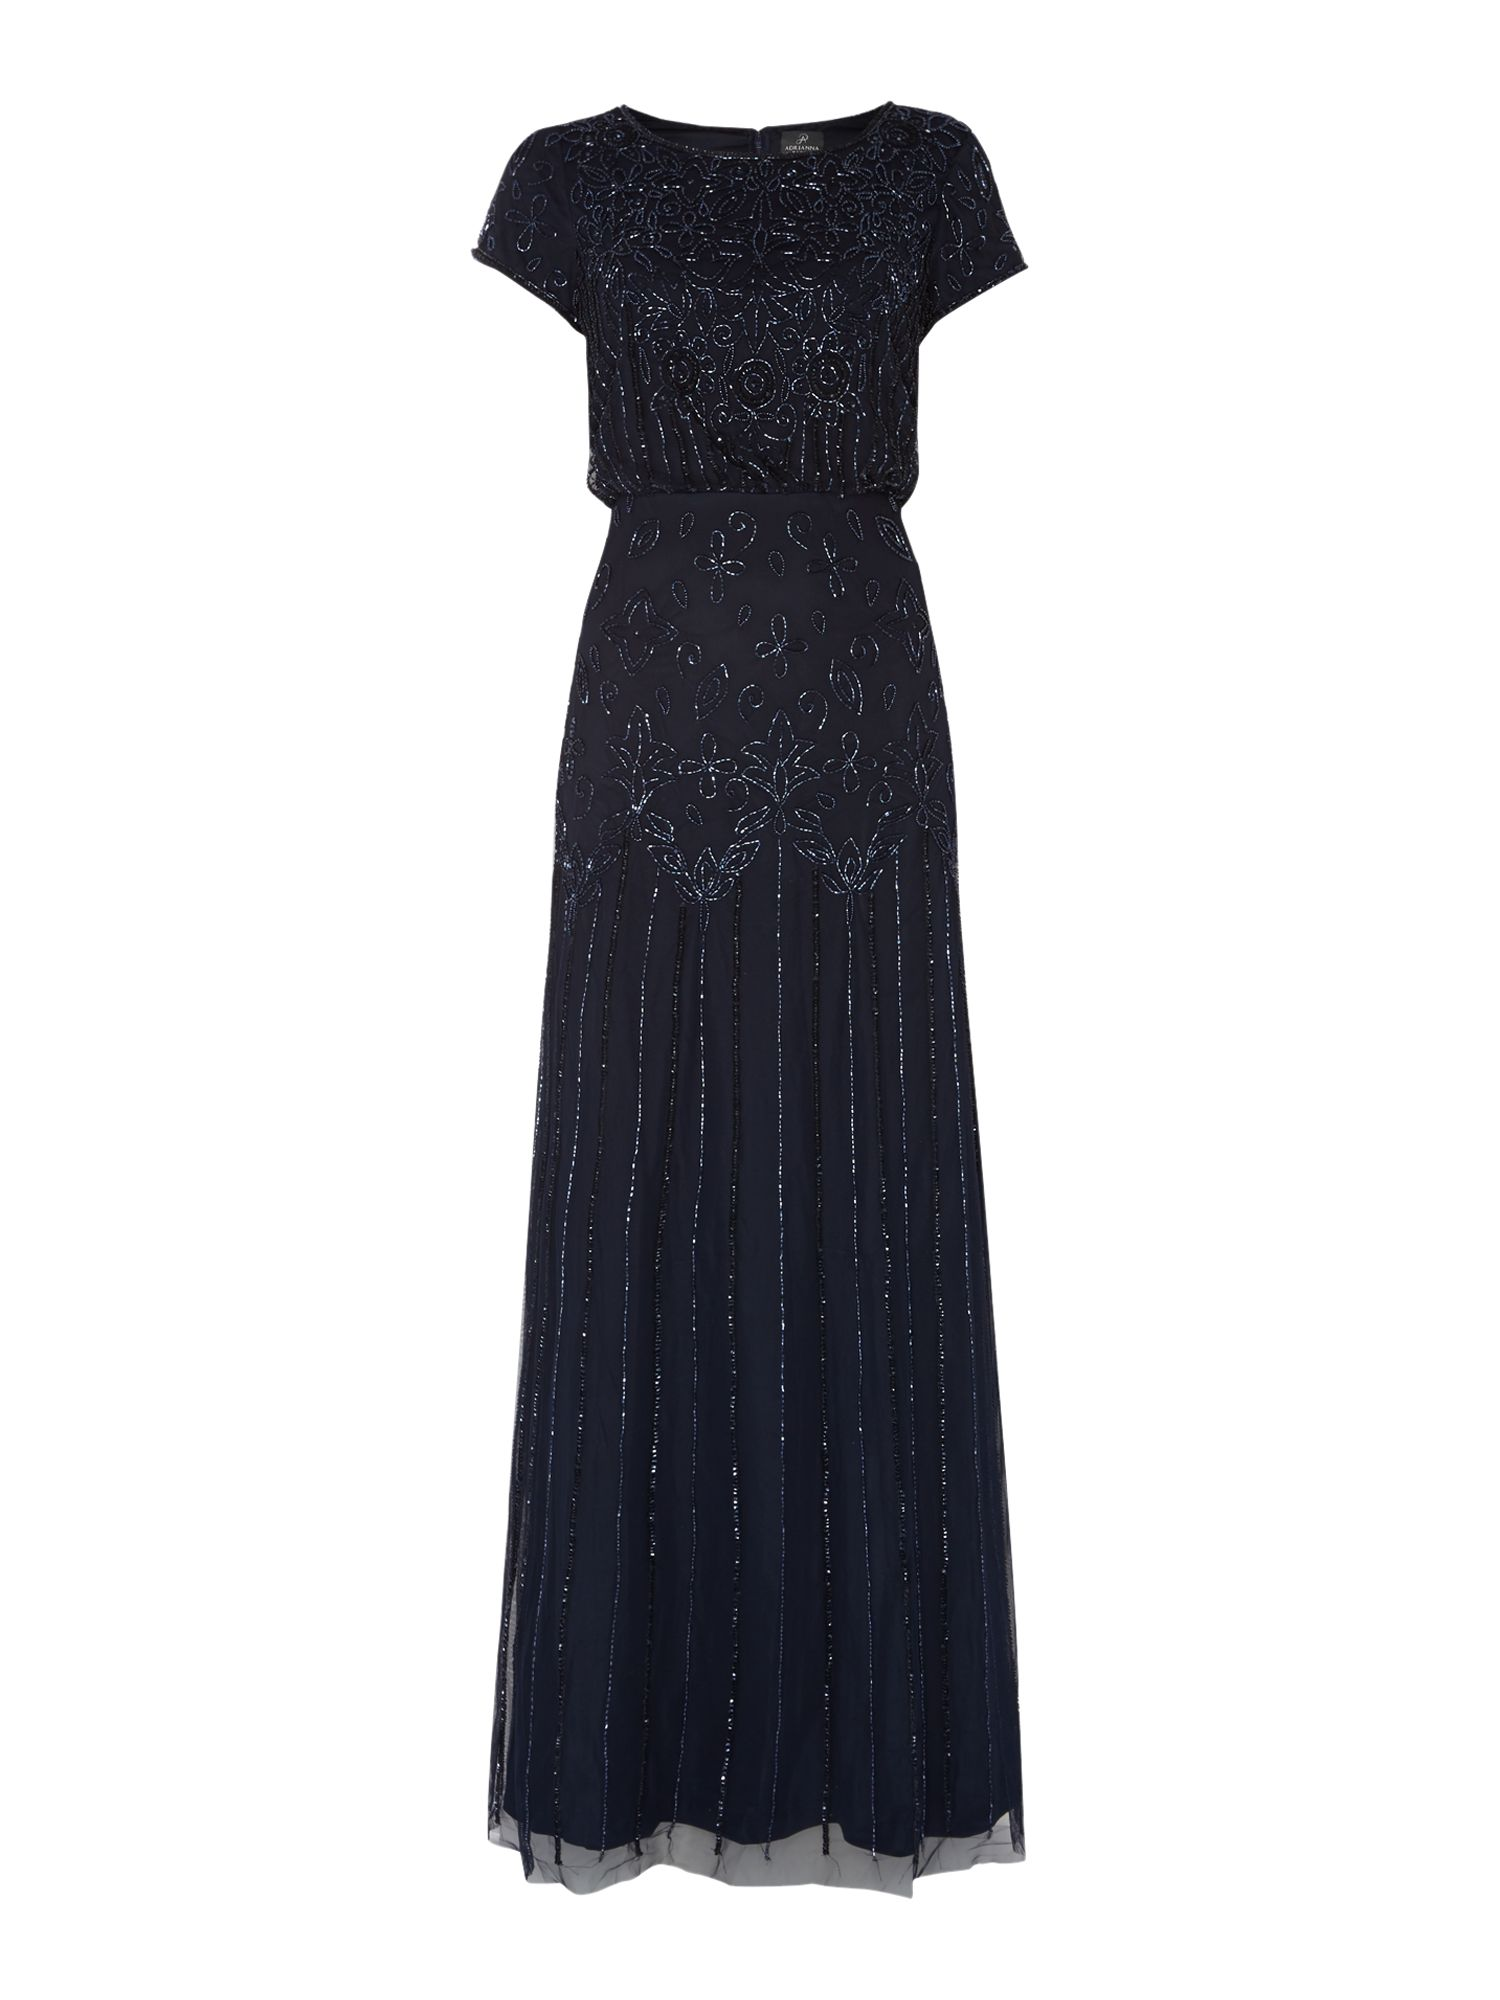 Adrianna Papell All over beaded cap sleeve dress $190.00 AT vintagedancer.com